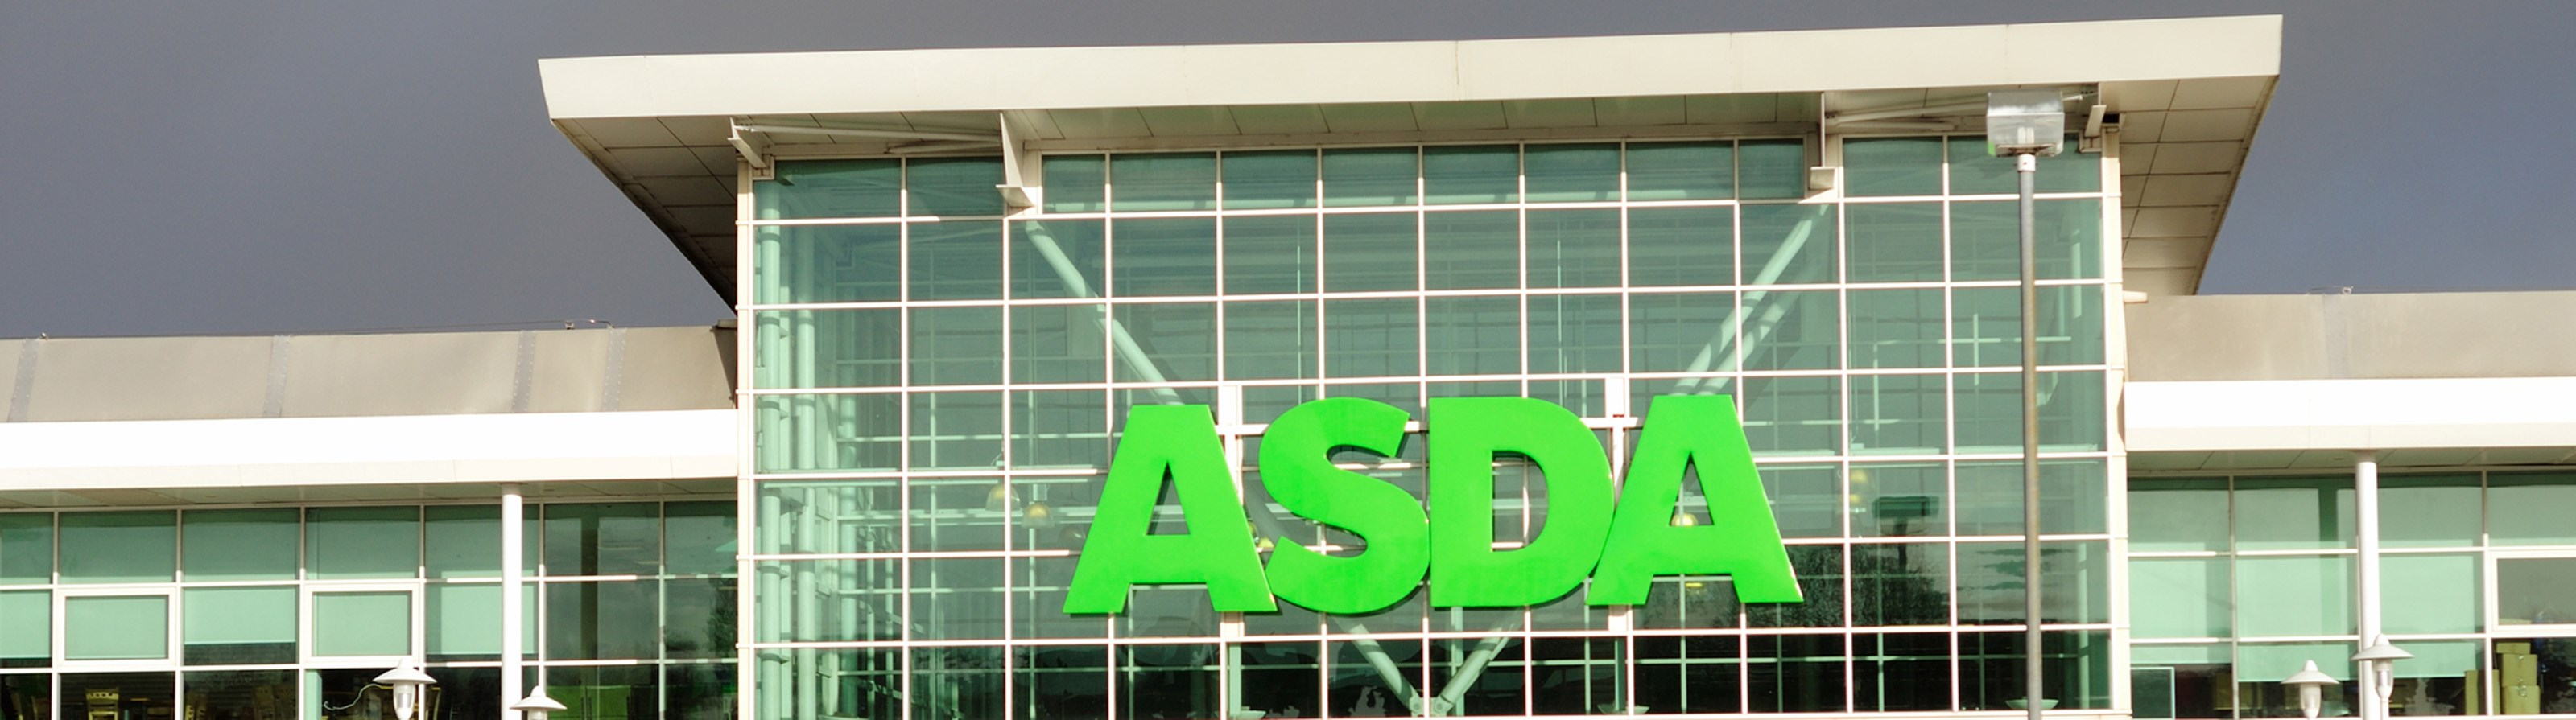 ASDA store in Mansfield. Photo: Ian Francis